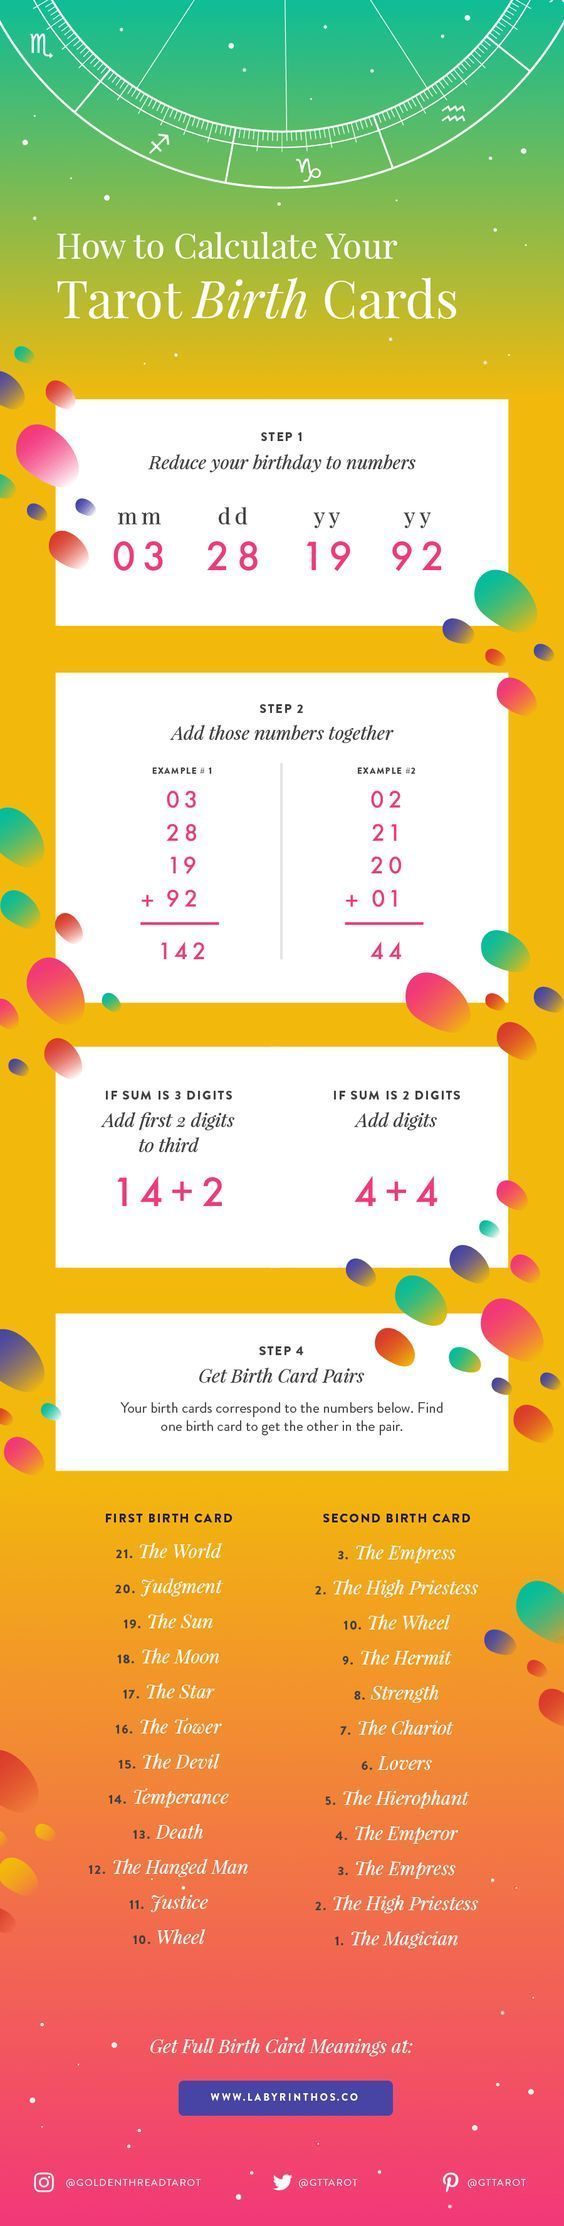 Best 25 birth calculator ideas on pinterest baby birth how to calculate your tarot birth card plus short birth card meanings infographic nvjuhfo Choice Image